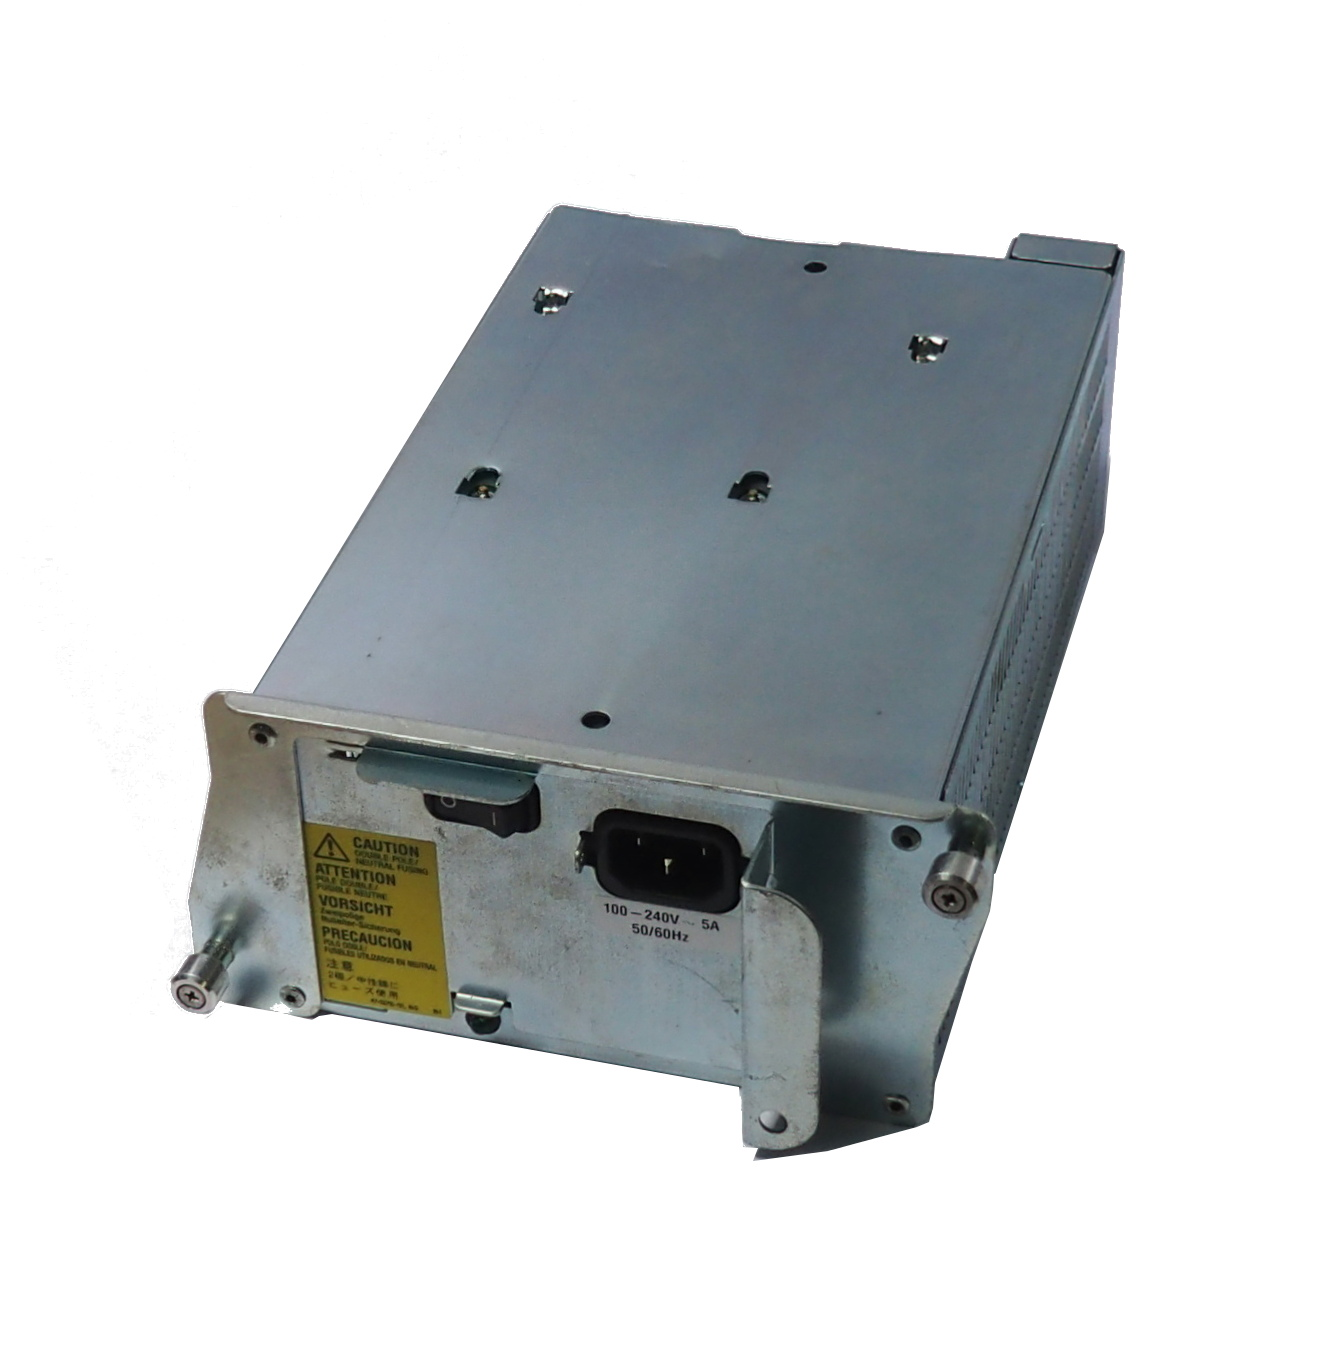 Cisco 34-0687-01 EP071263-C 280W Power Supply For 7200 series 7204 VXR Router